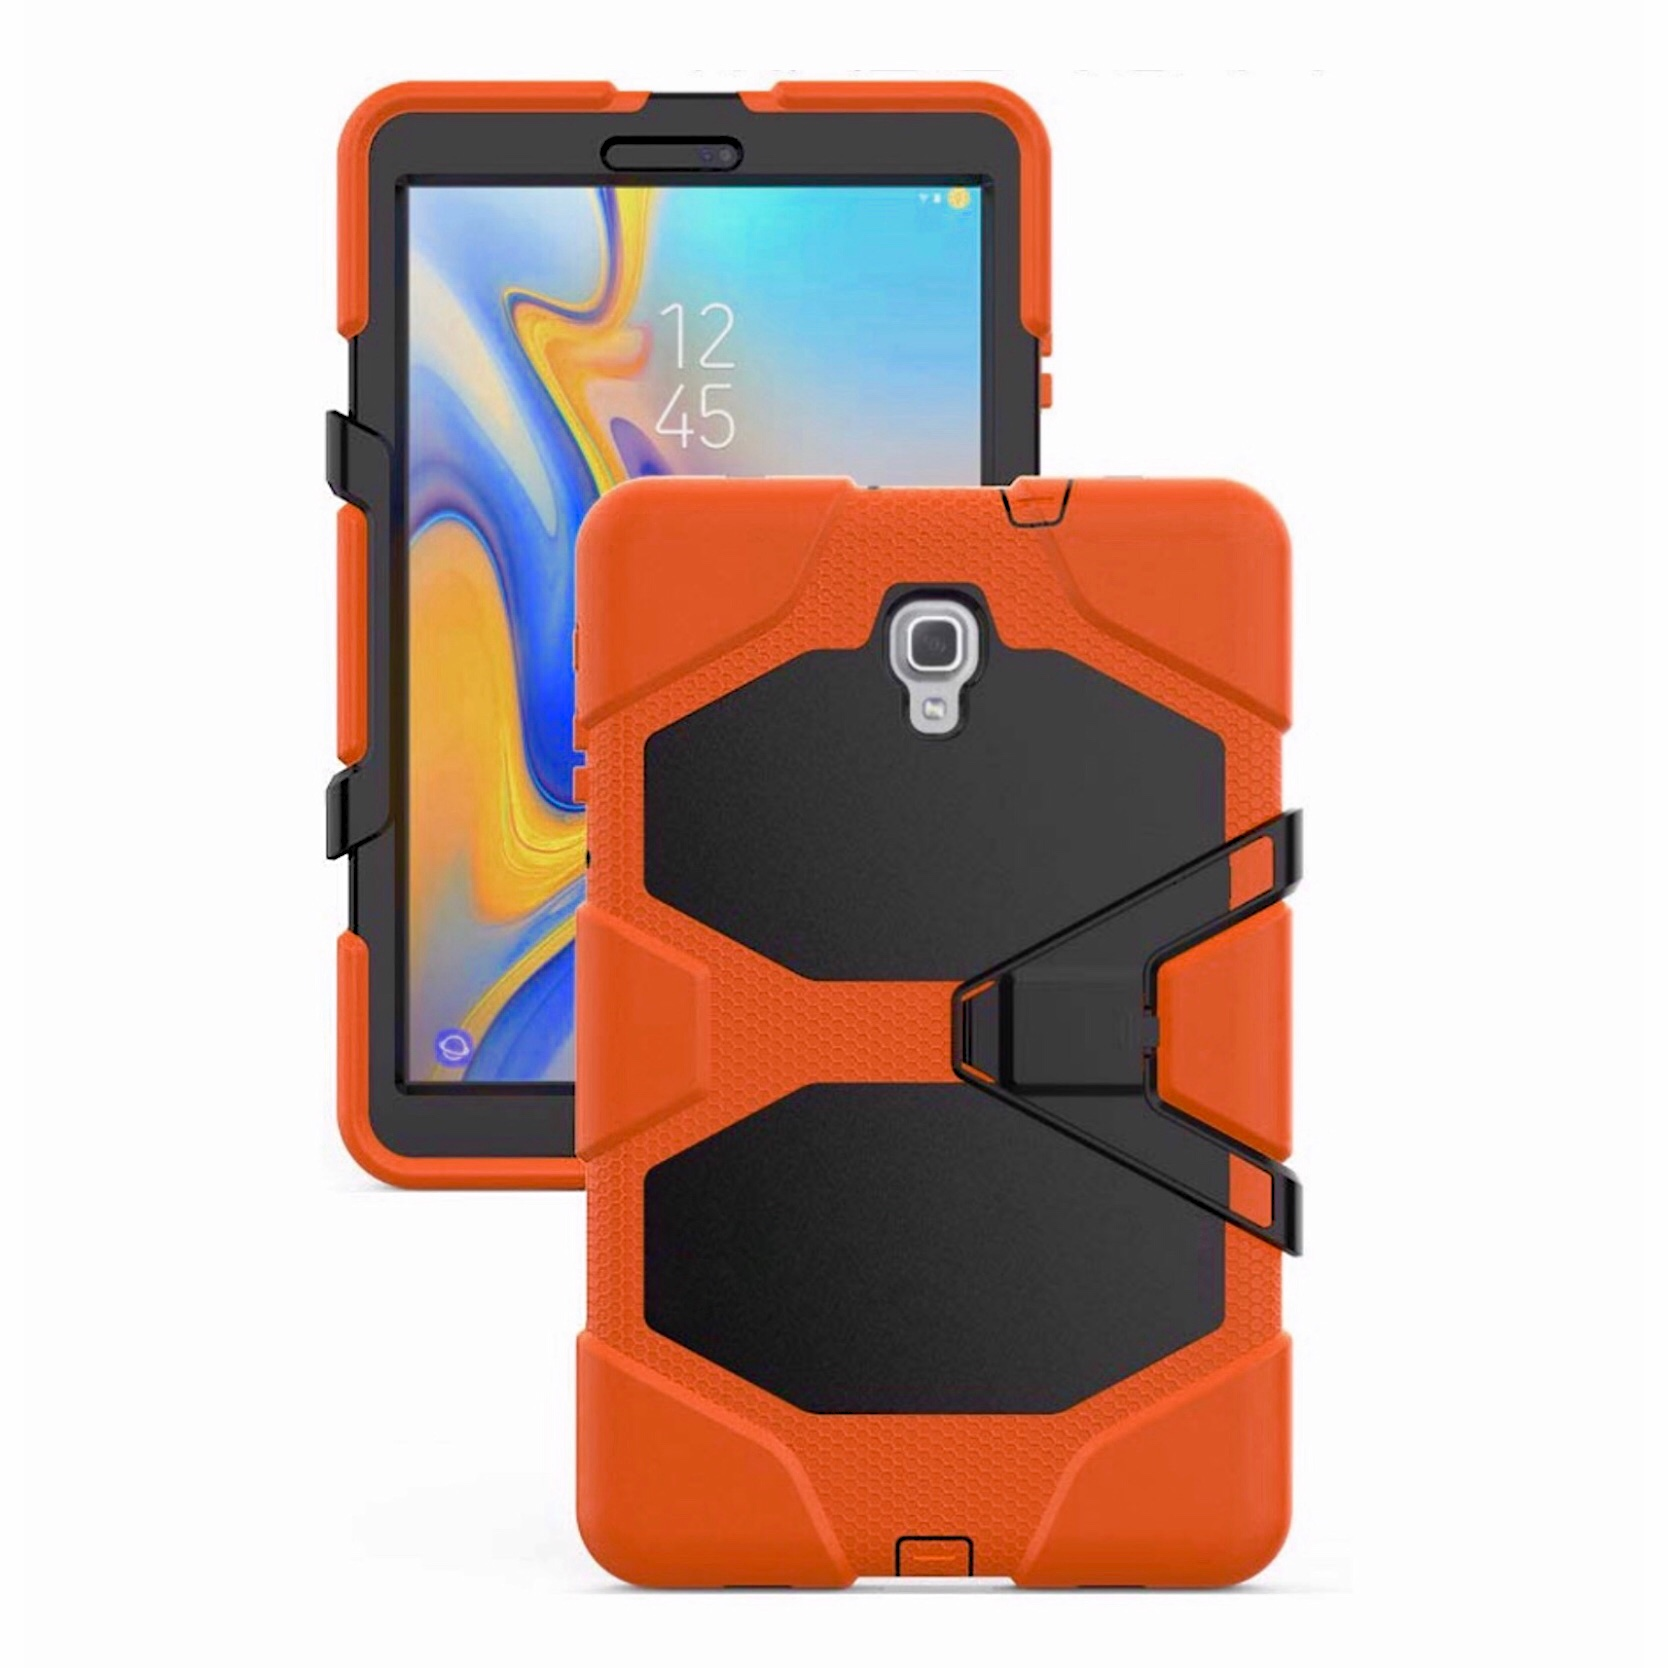 Coque Pro avec film rigide ecran Samsung Galaxy TAB A 10.5p Vegas Orange